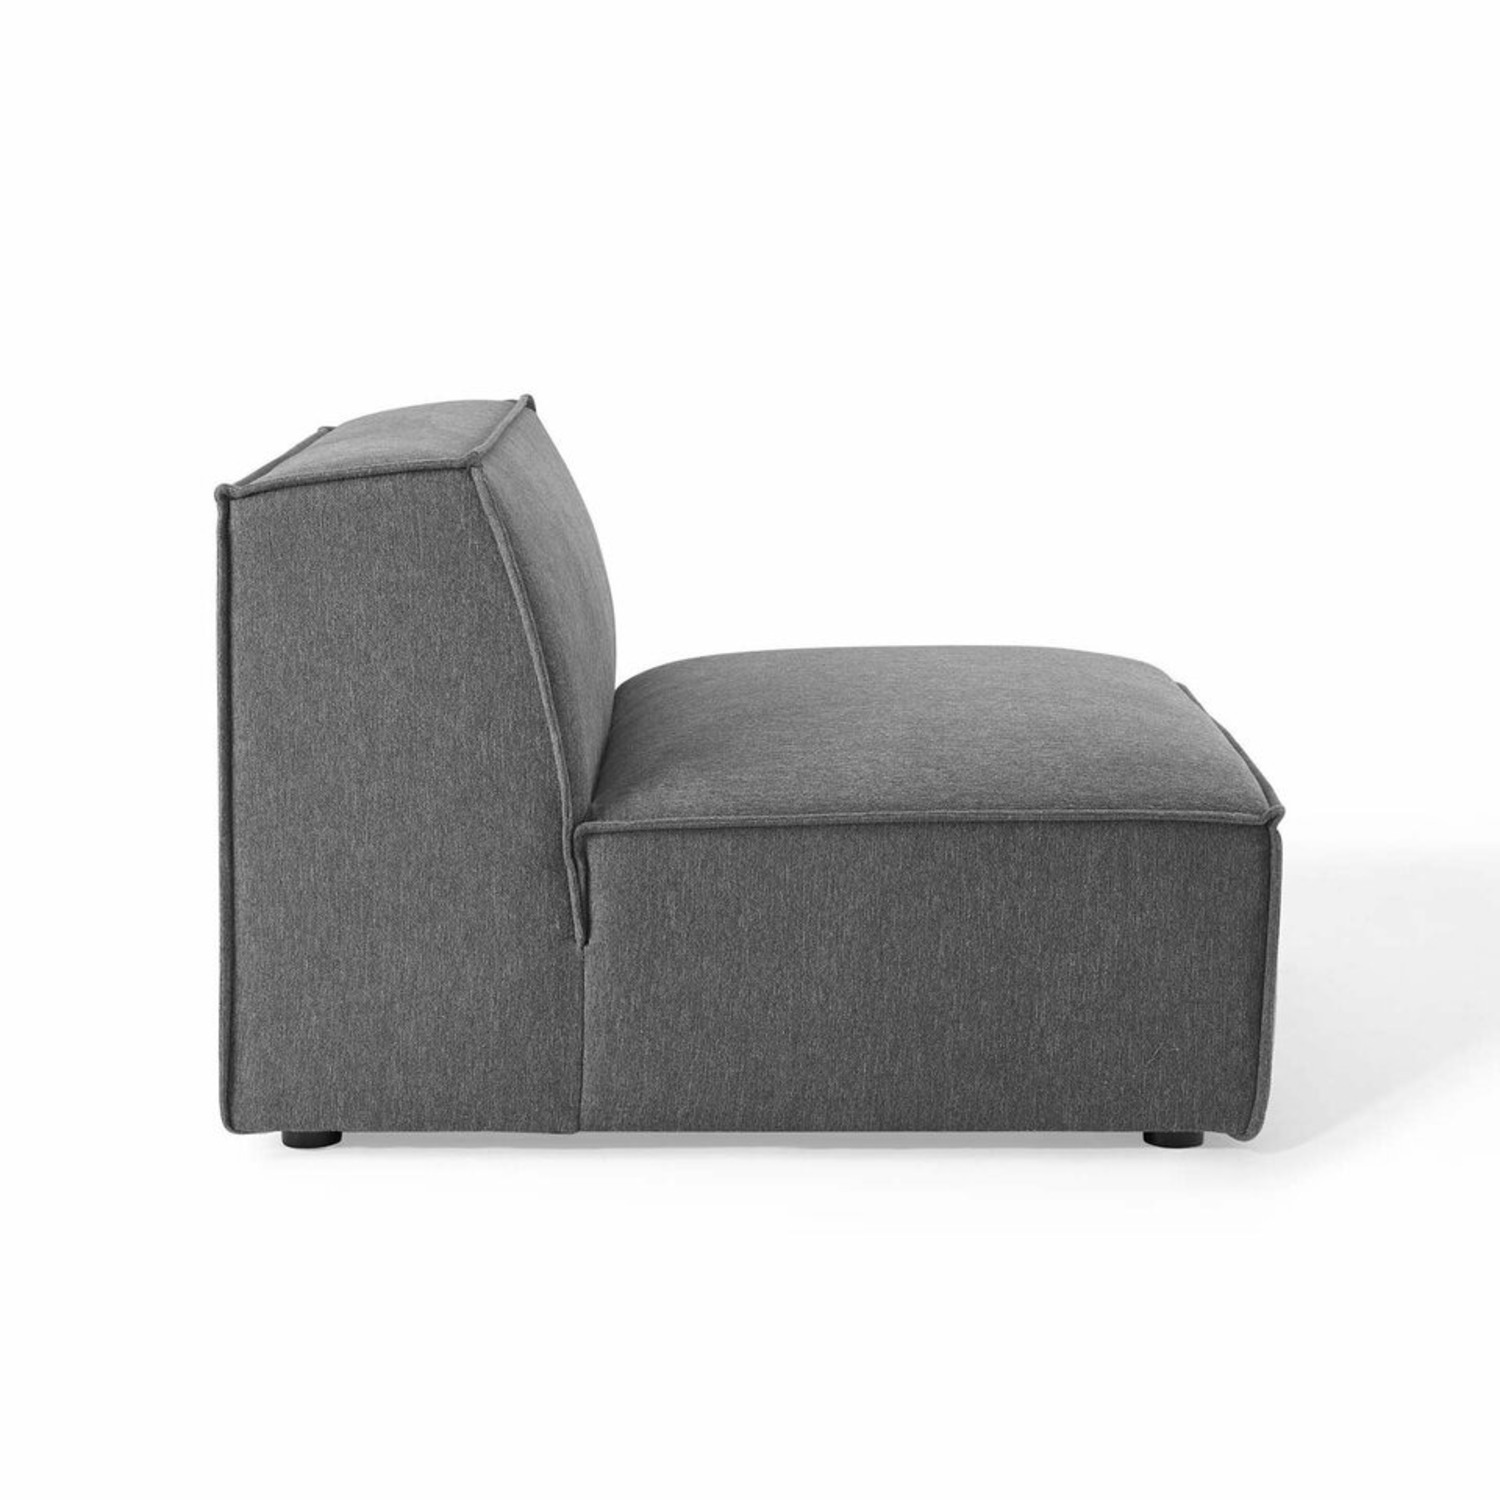 6Piece Sectional Sofa In Charcoal Polyester Fabric - image-8